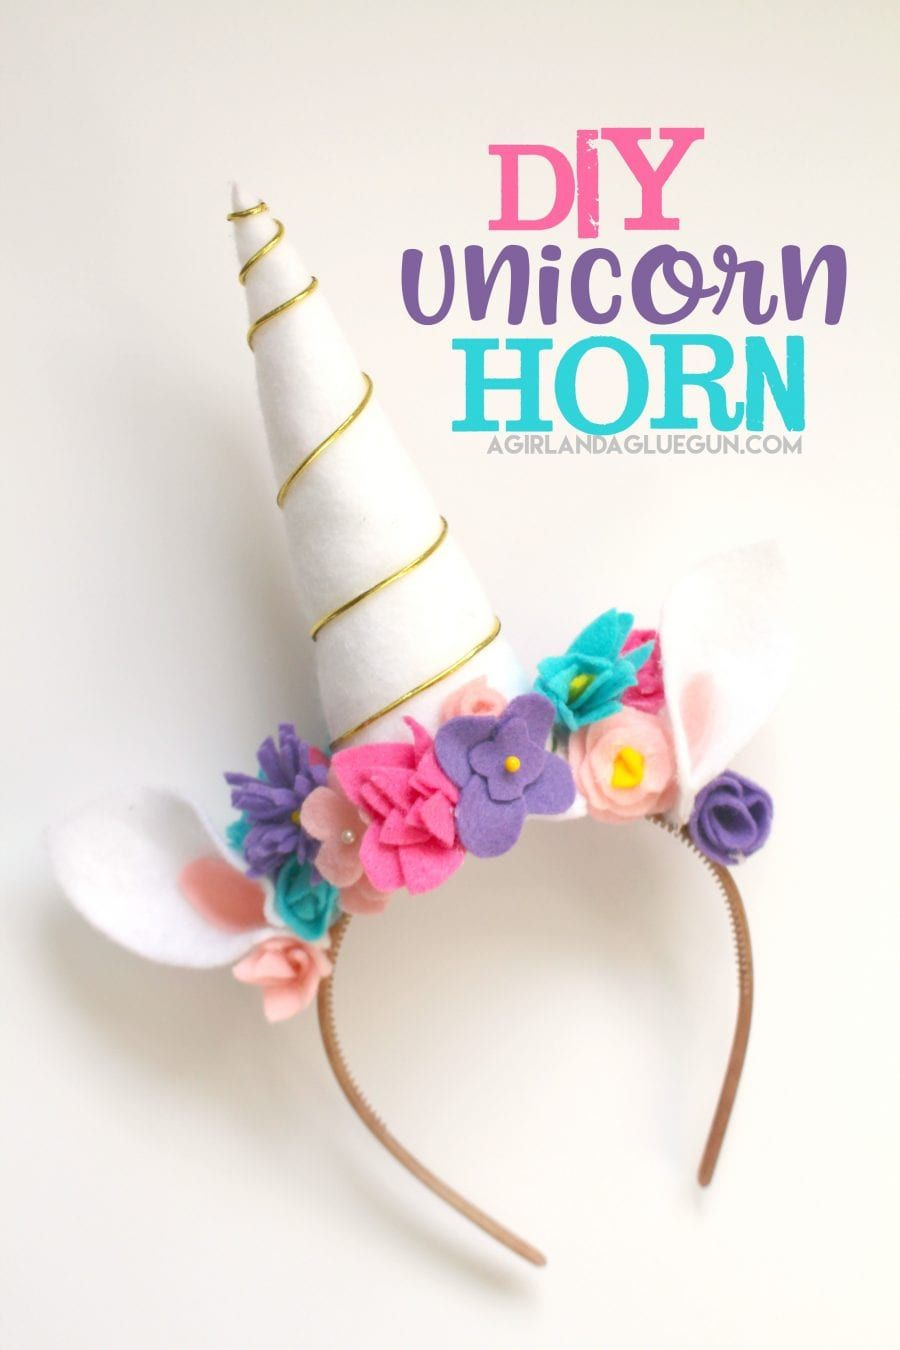 Unicorn costume DIY - A girl and a glue gun #unicorncrafts